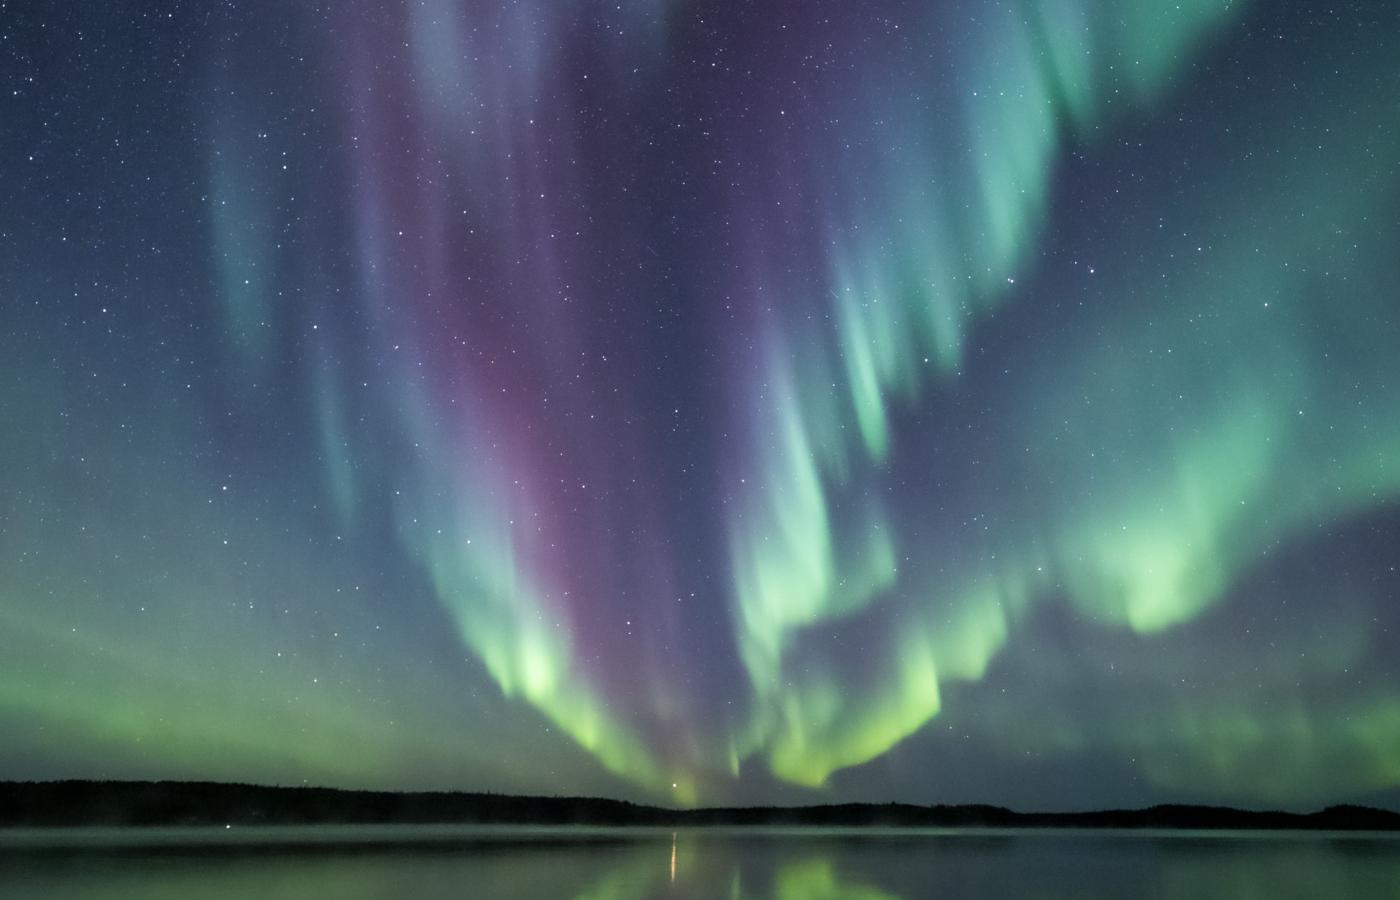 Aurora streaming through the sky over Great Slave Lake in the NWT